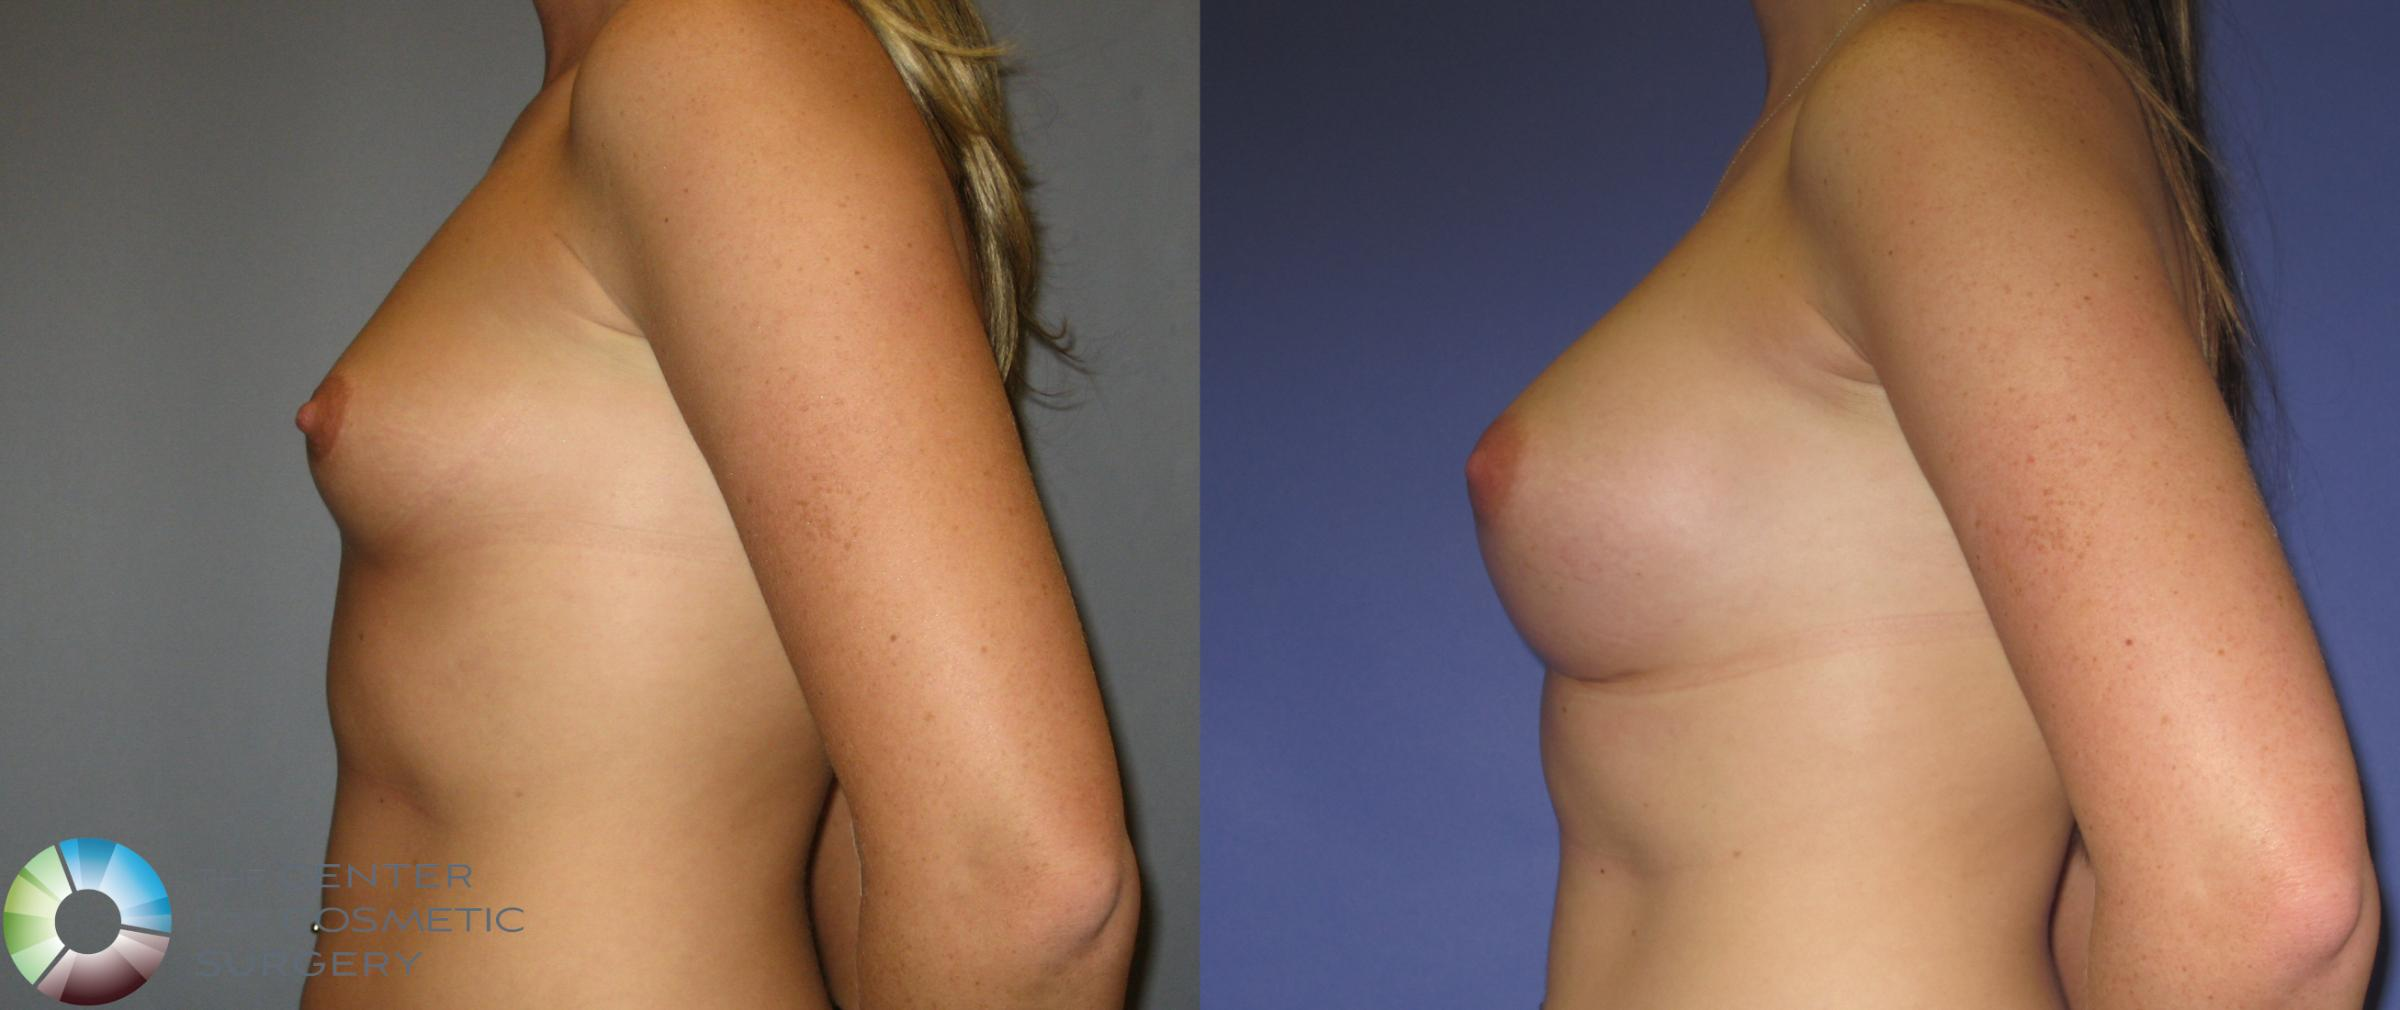 Breast Augmentation Case 372 Before & After View #3 | Golden, CO | The Center for Cosmetic Surgery